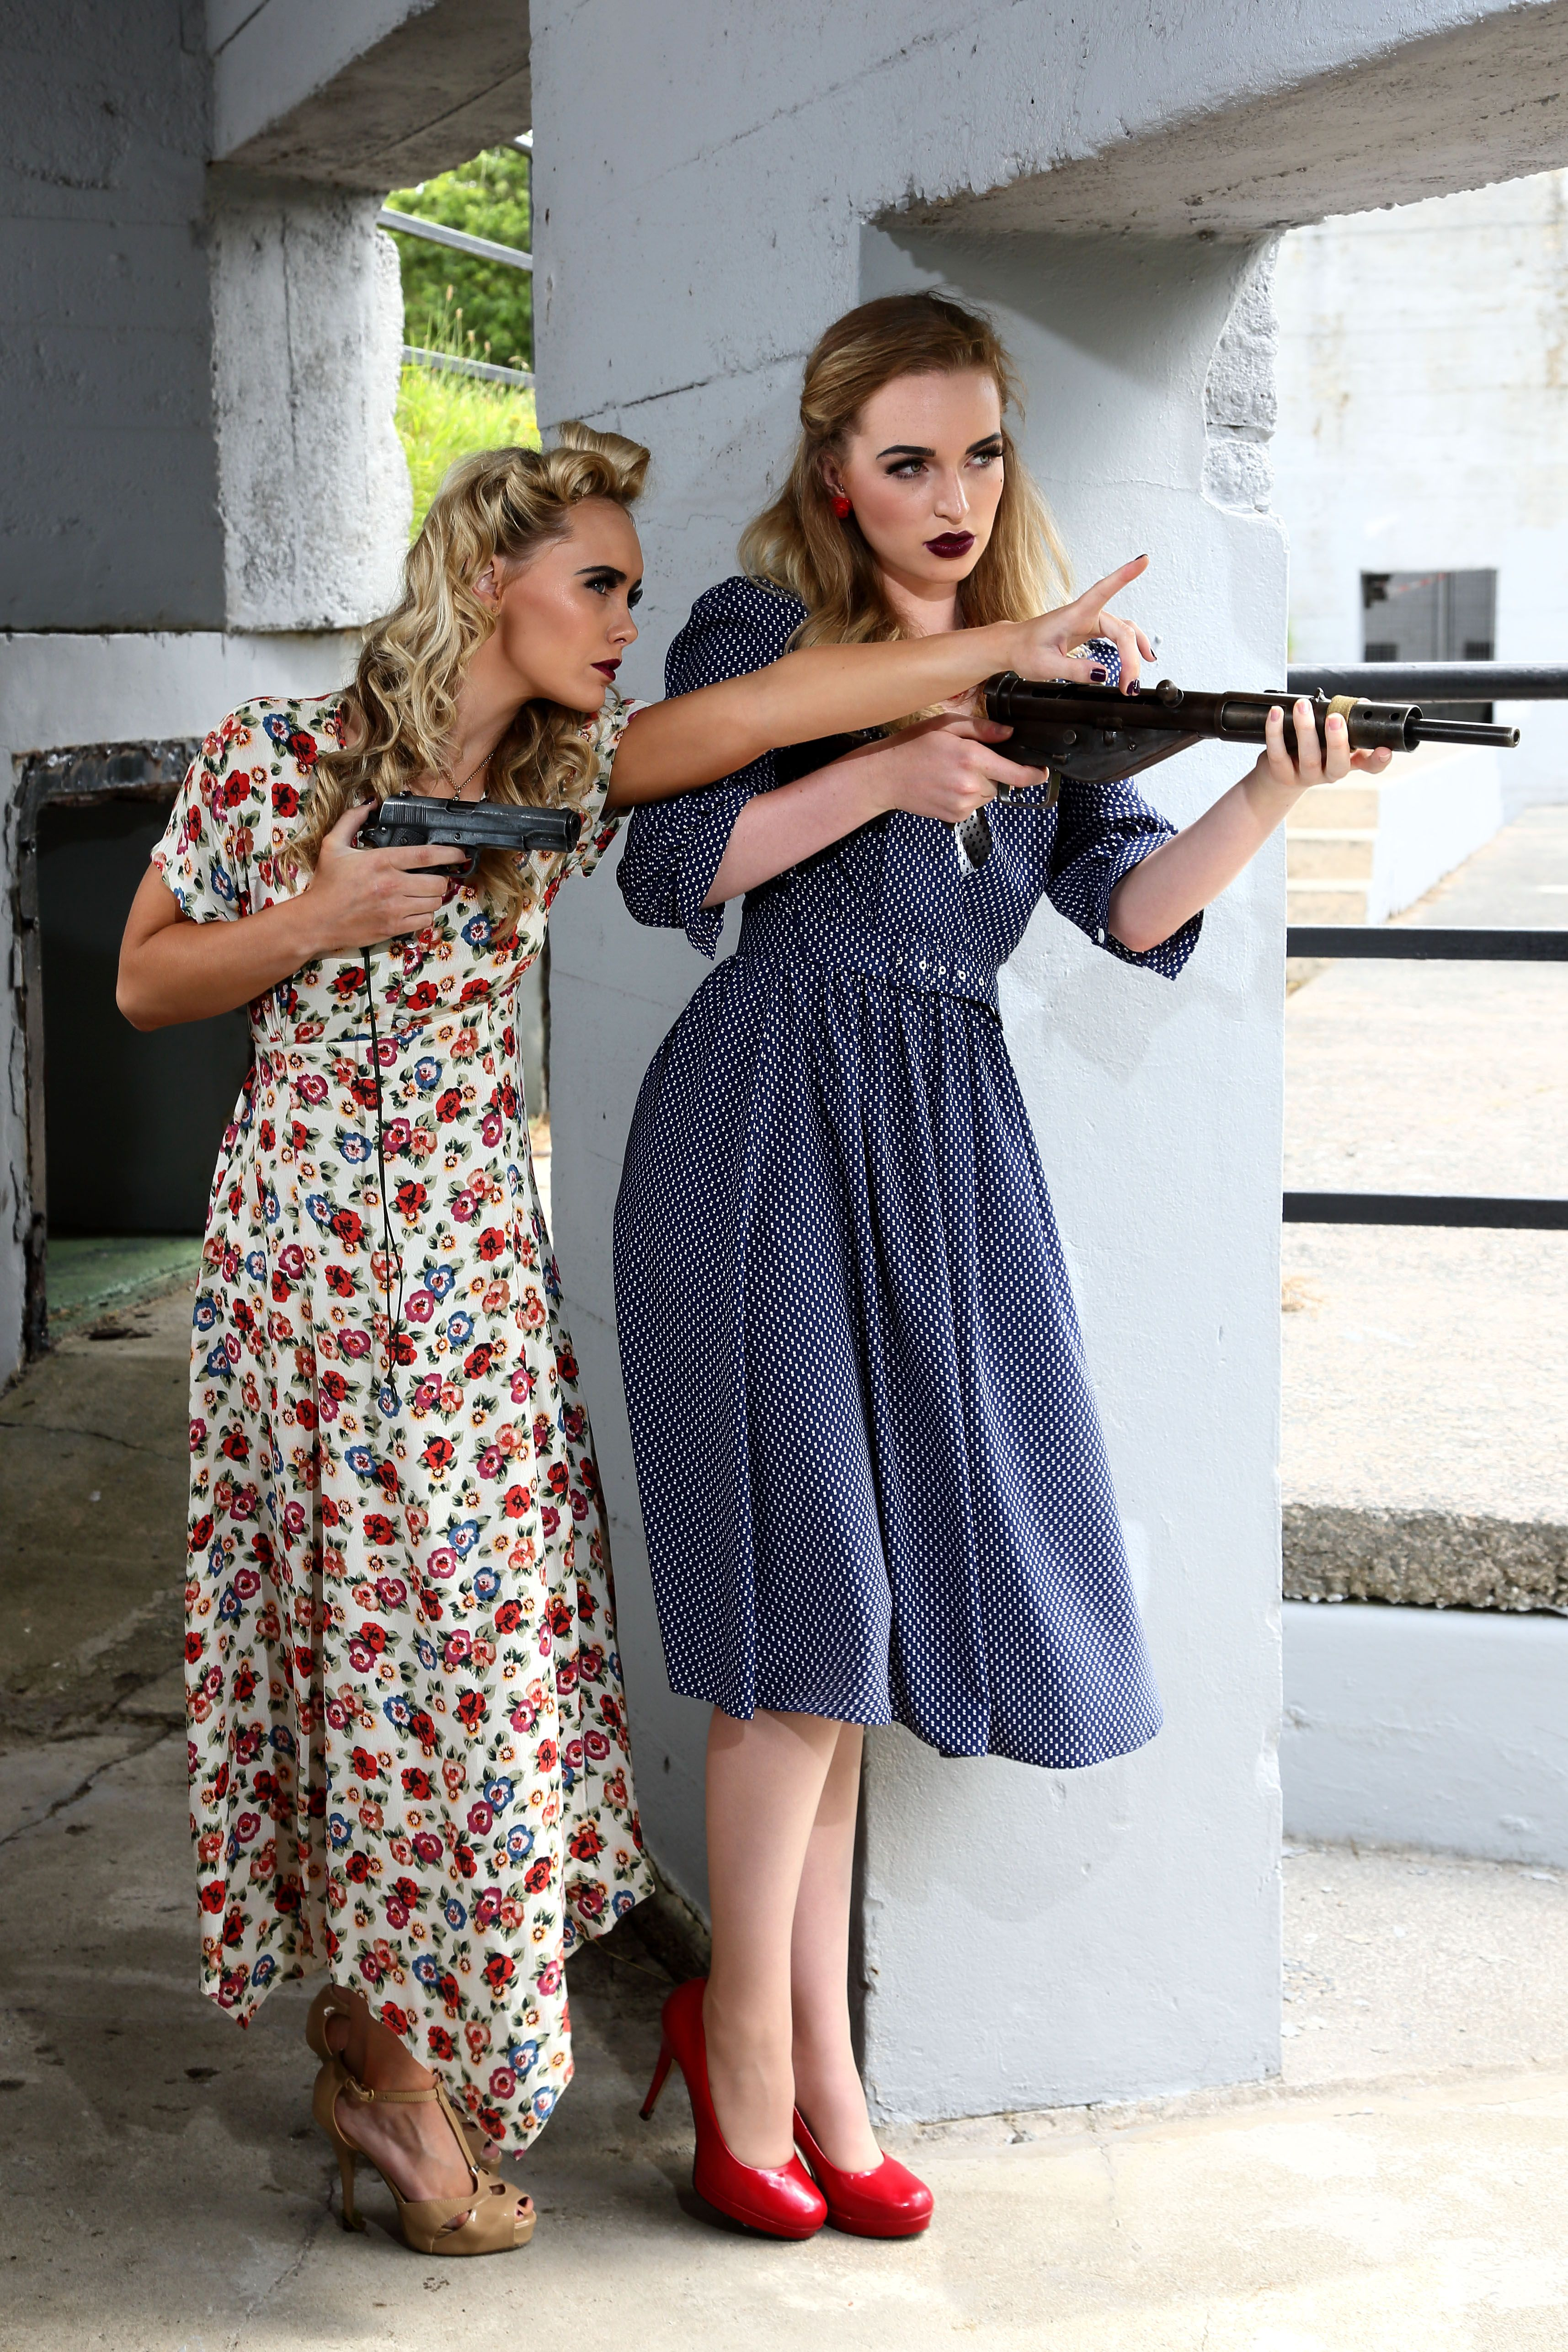 1000 Images About 1940s Fashion On Pinterest: Recreating 1940's WW2 French Resistance Look